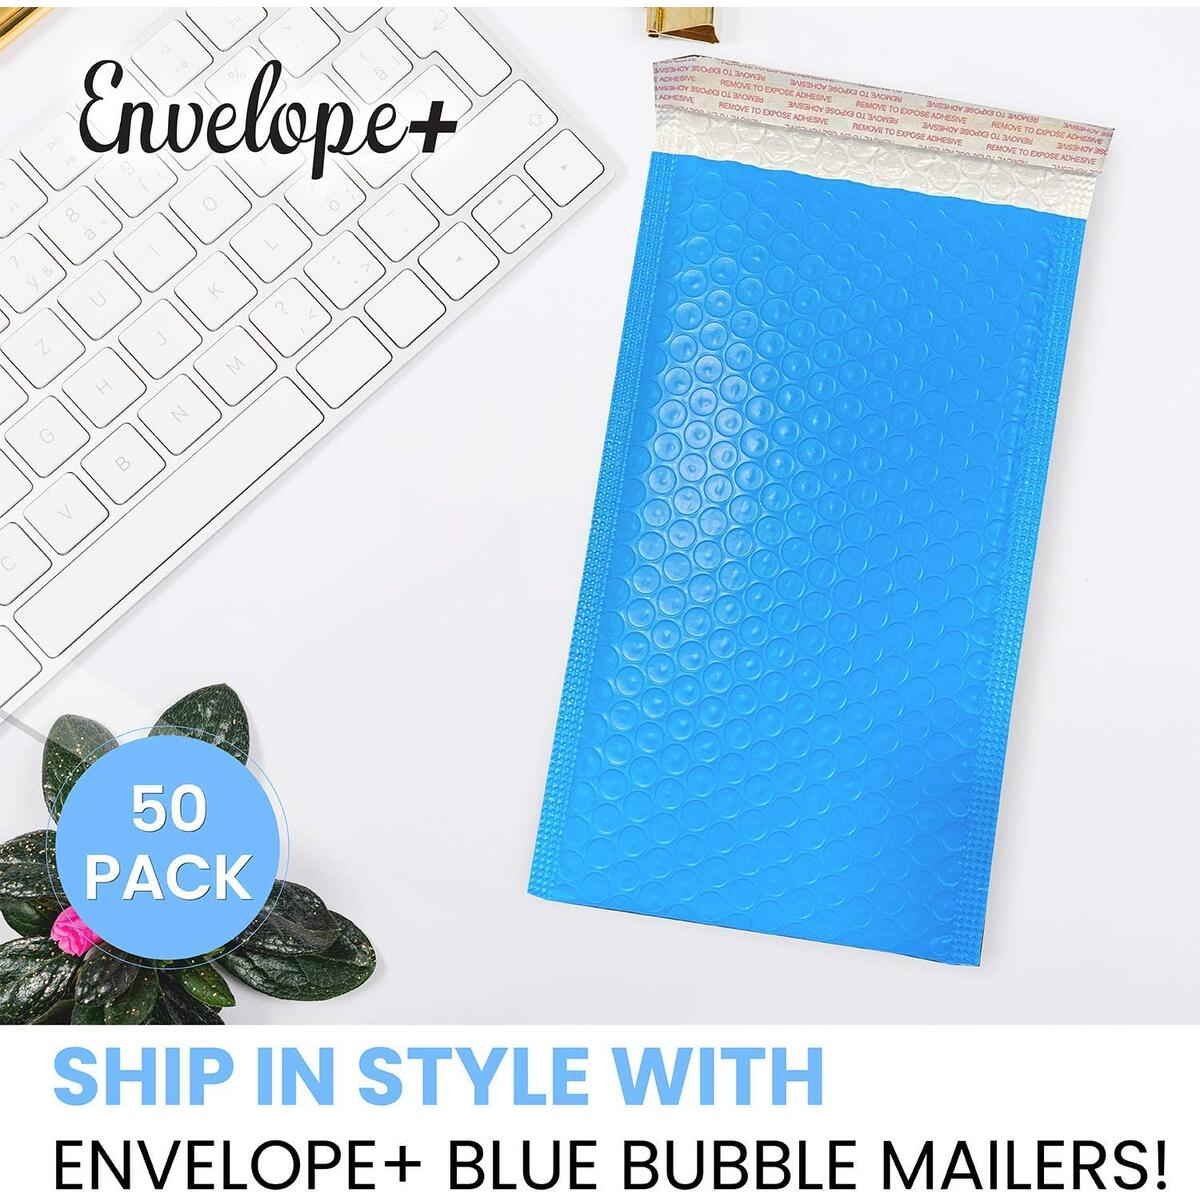 Envelope+ 50pcs Blue Bubble Mailers 6x10 (inside 5.25x10) Padded Poly Mailing Shipping Envelopes Waterproof, Self Seal, Safe (inside 5.25x10)